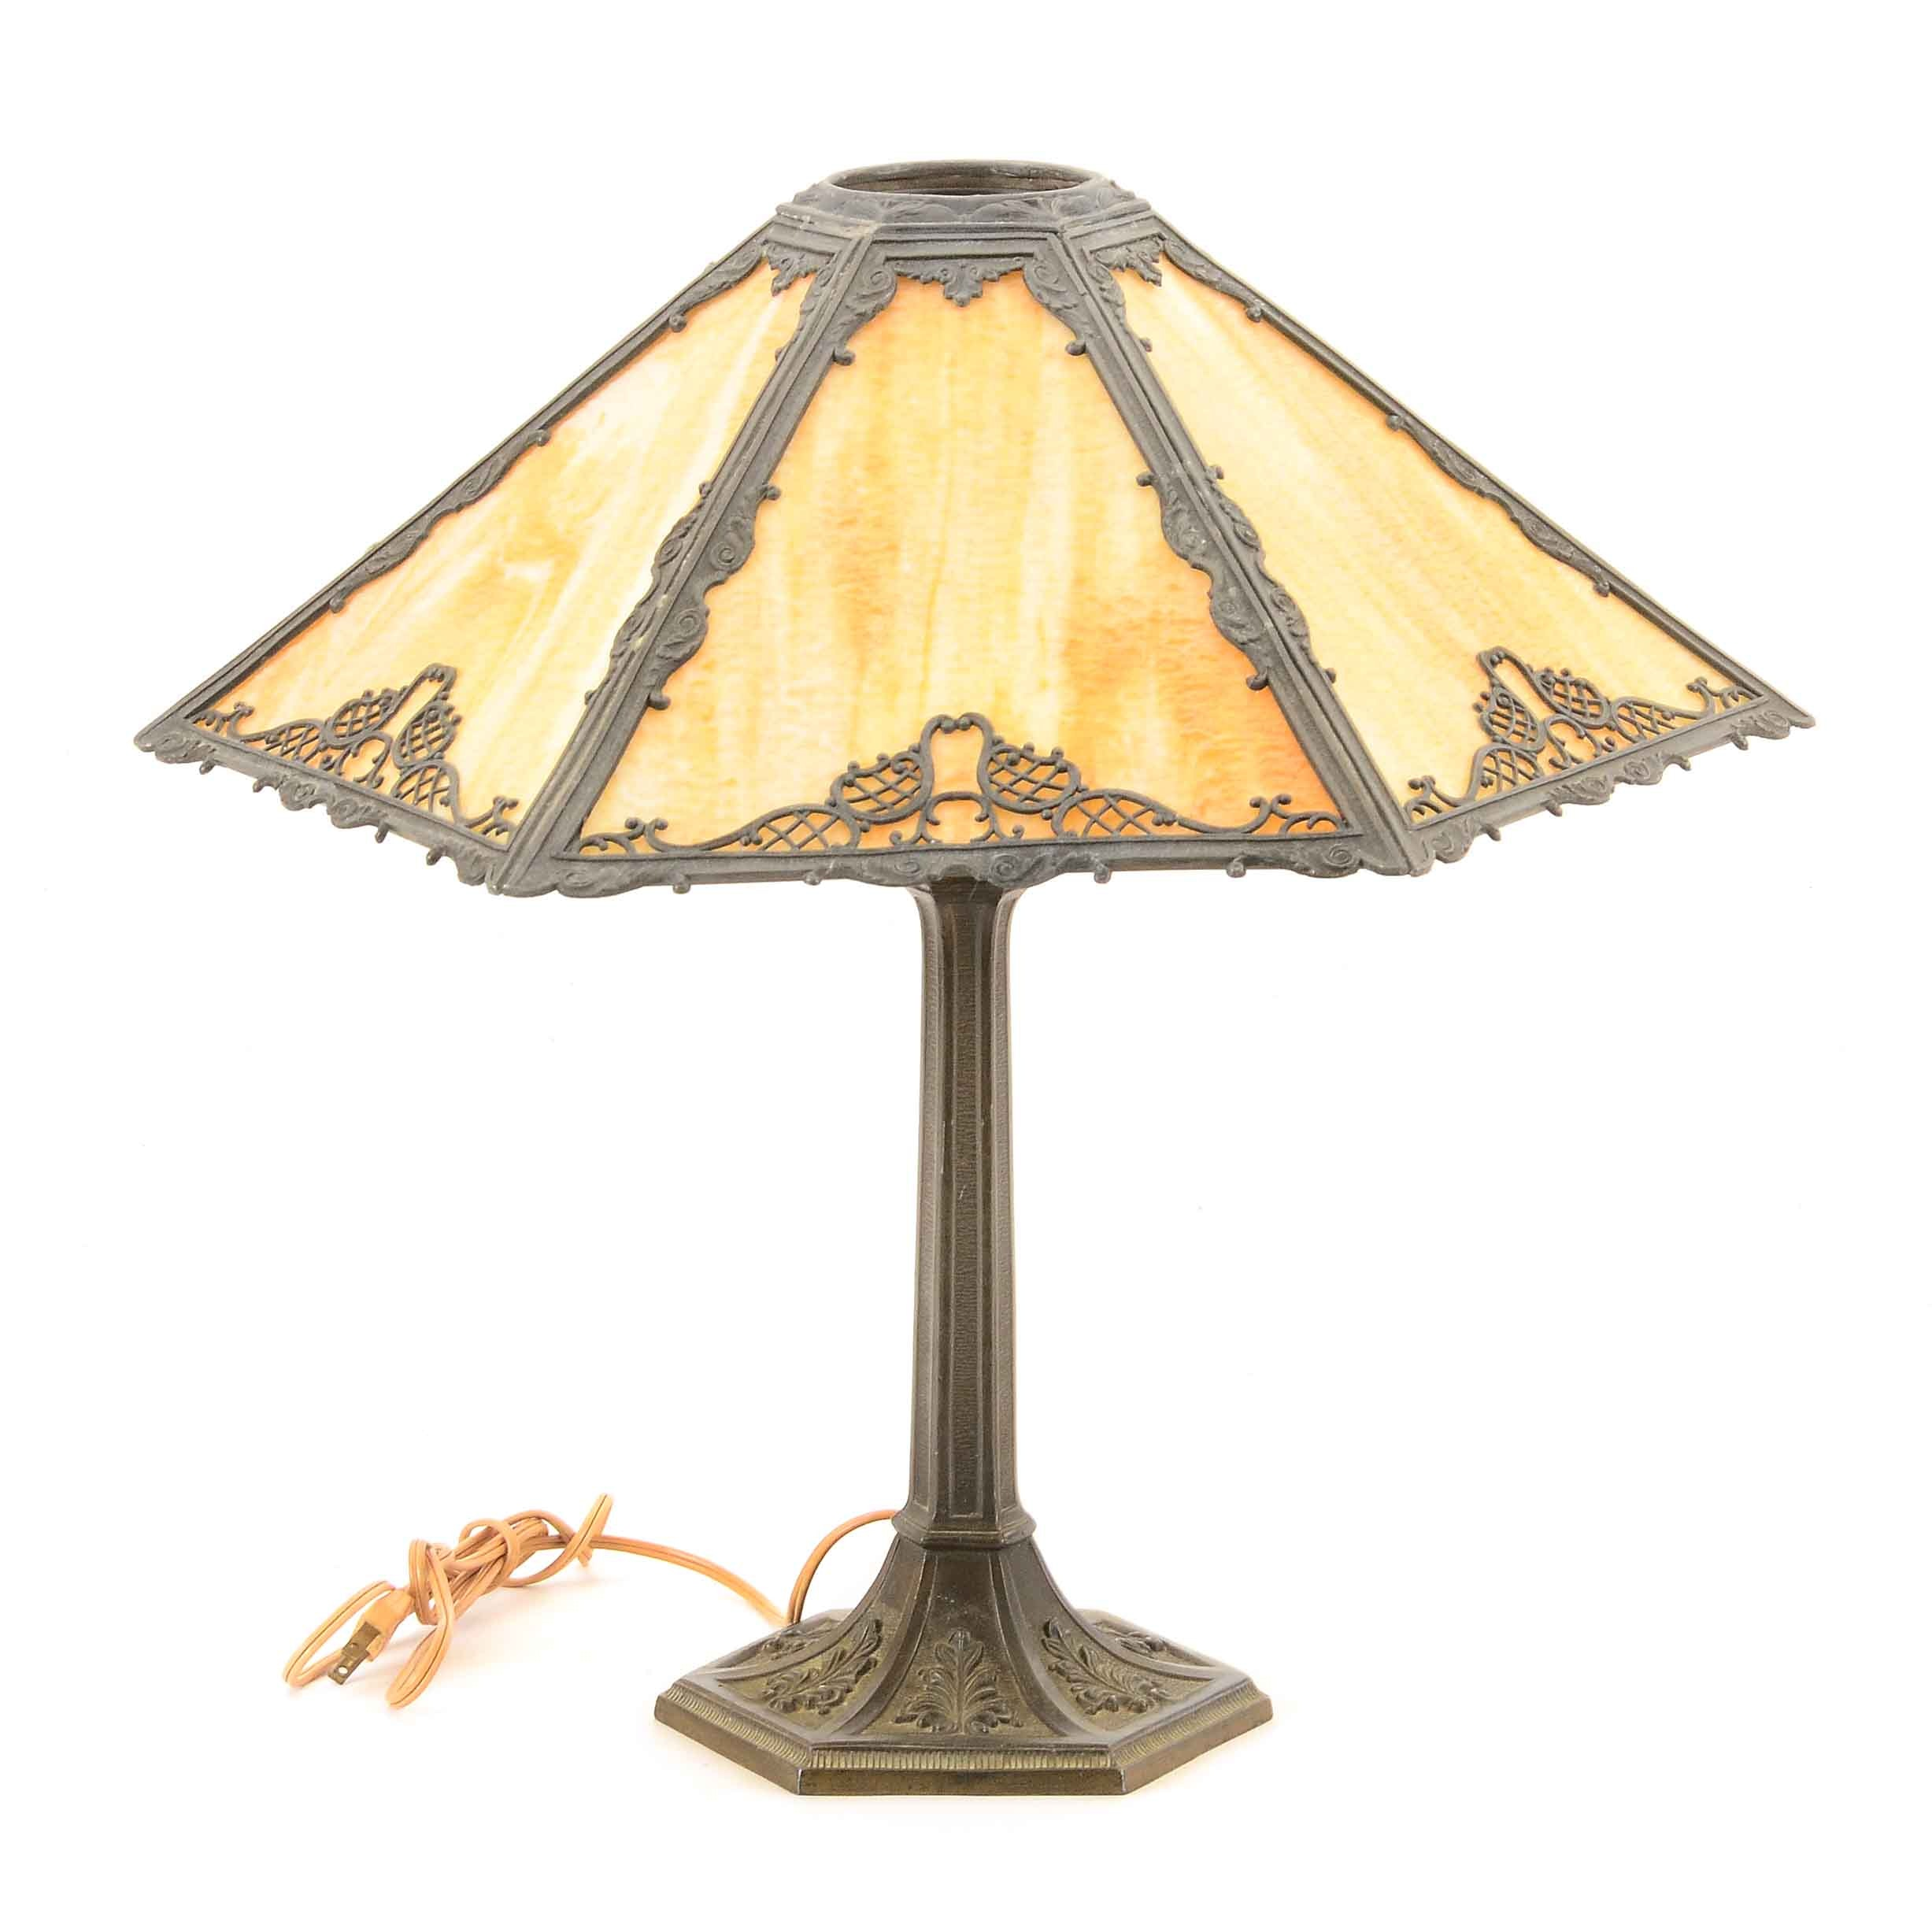 Vintage Table Lamp with Slag Glass Shade